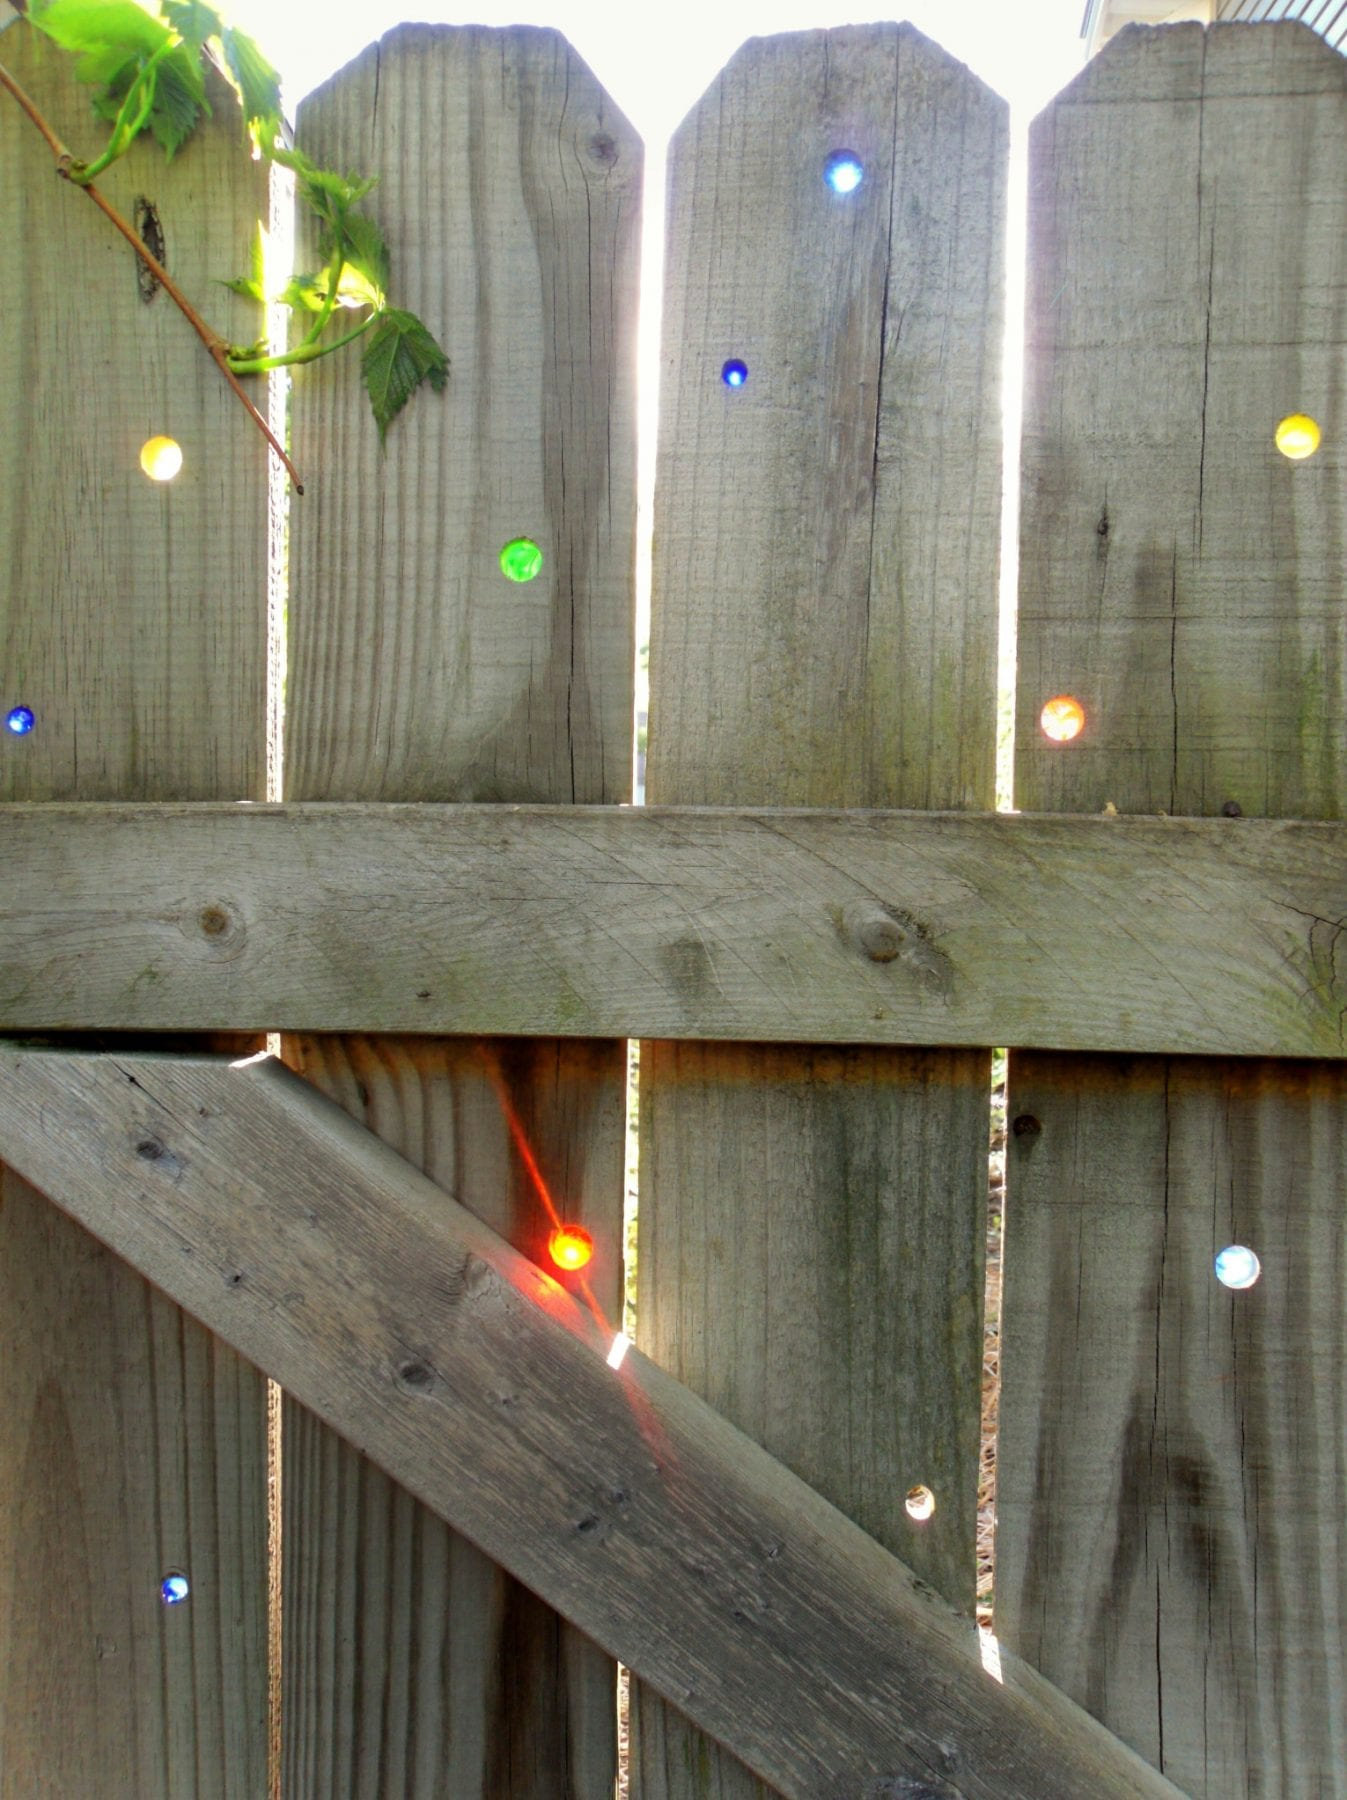 Garden art on the cheap DIY: Glass marbles in your fence